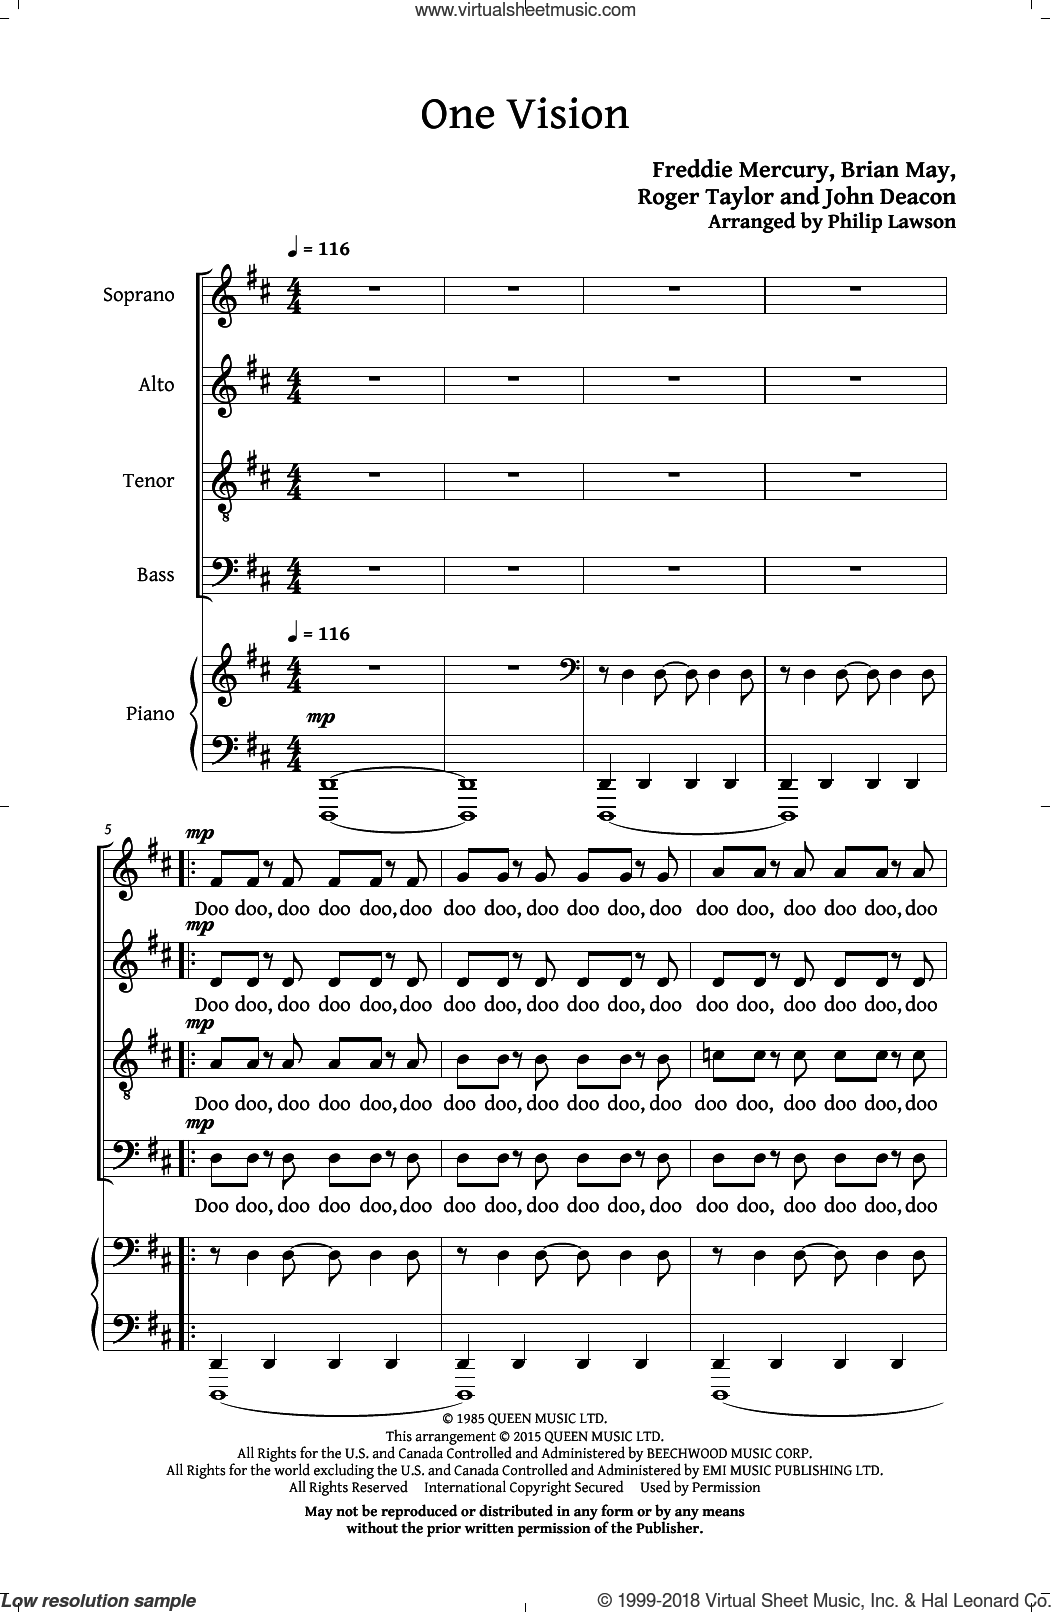 One Vision sheet music for choir and piano (SATB) by Roger Taylor, Philip Lawson, Queen, Brian May, Freddie Mercury and John Deacon. Score Image Preview.